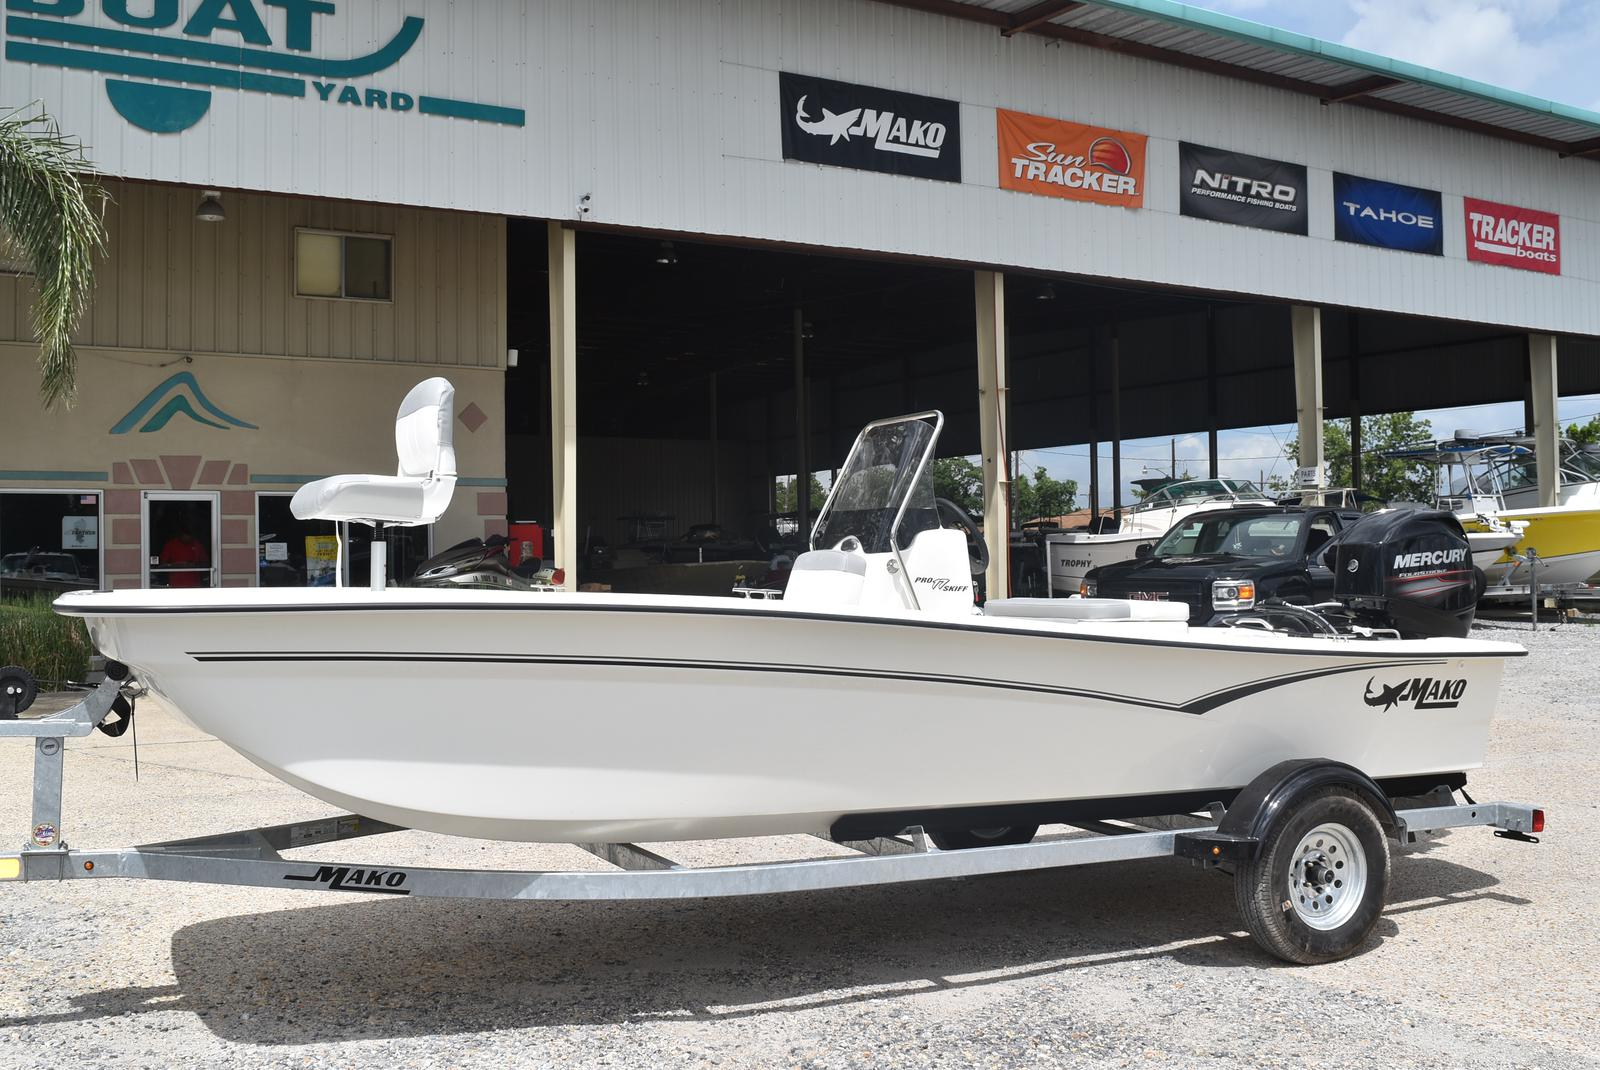 2020 Mako boat for sale, model of the boat is Pro Skiff 17, 75 ELPT & Image # 99 of 702